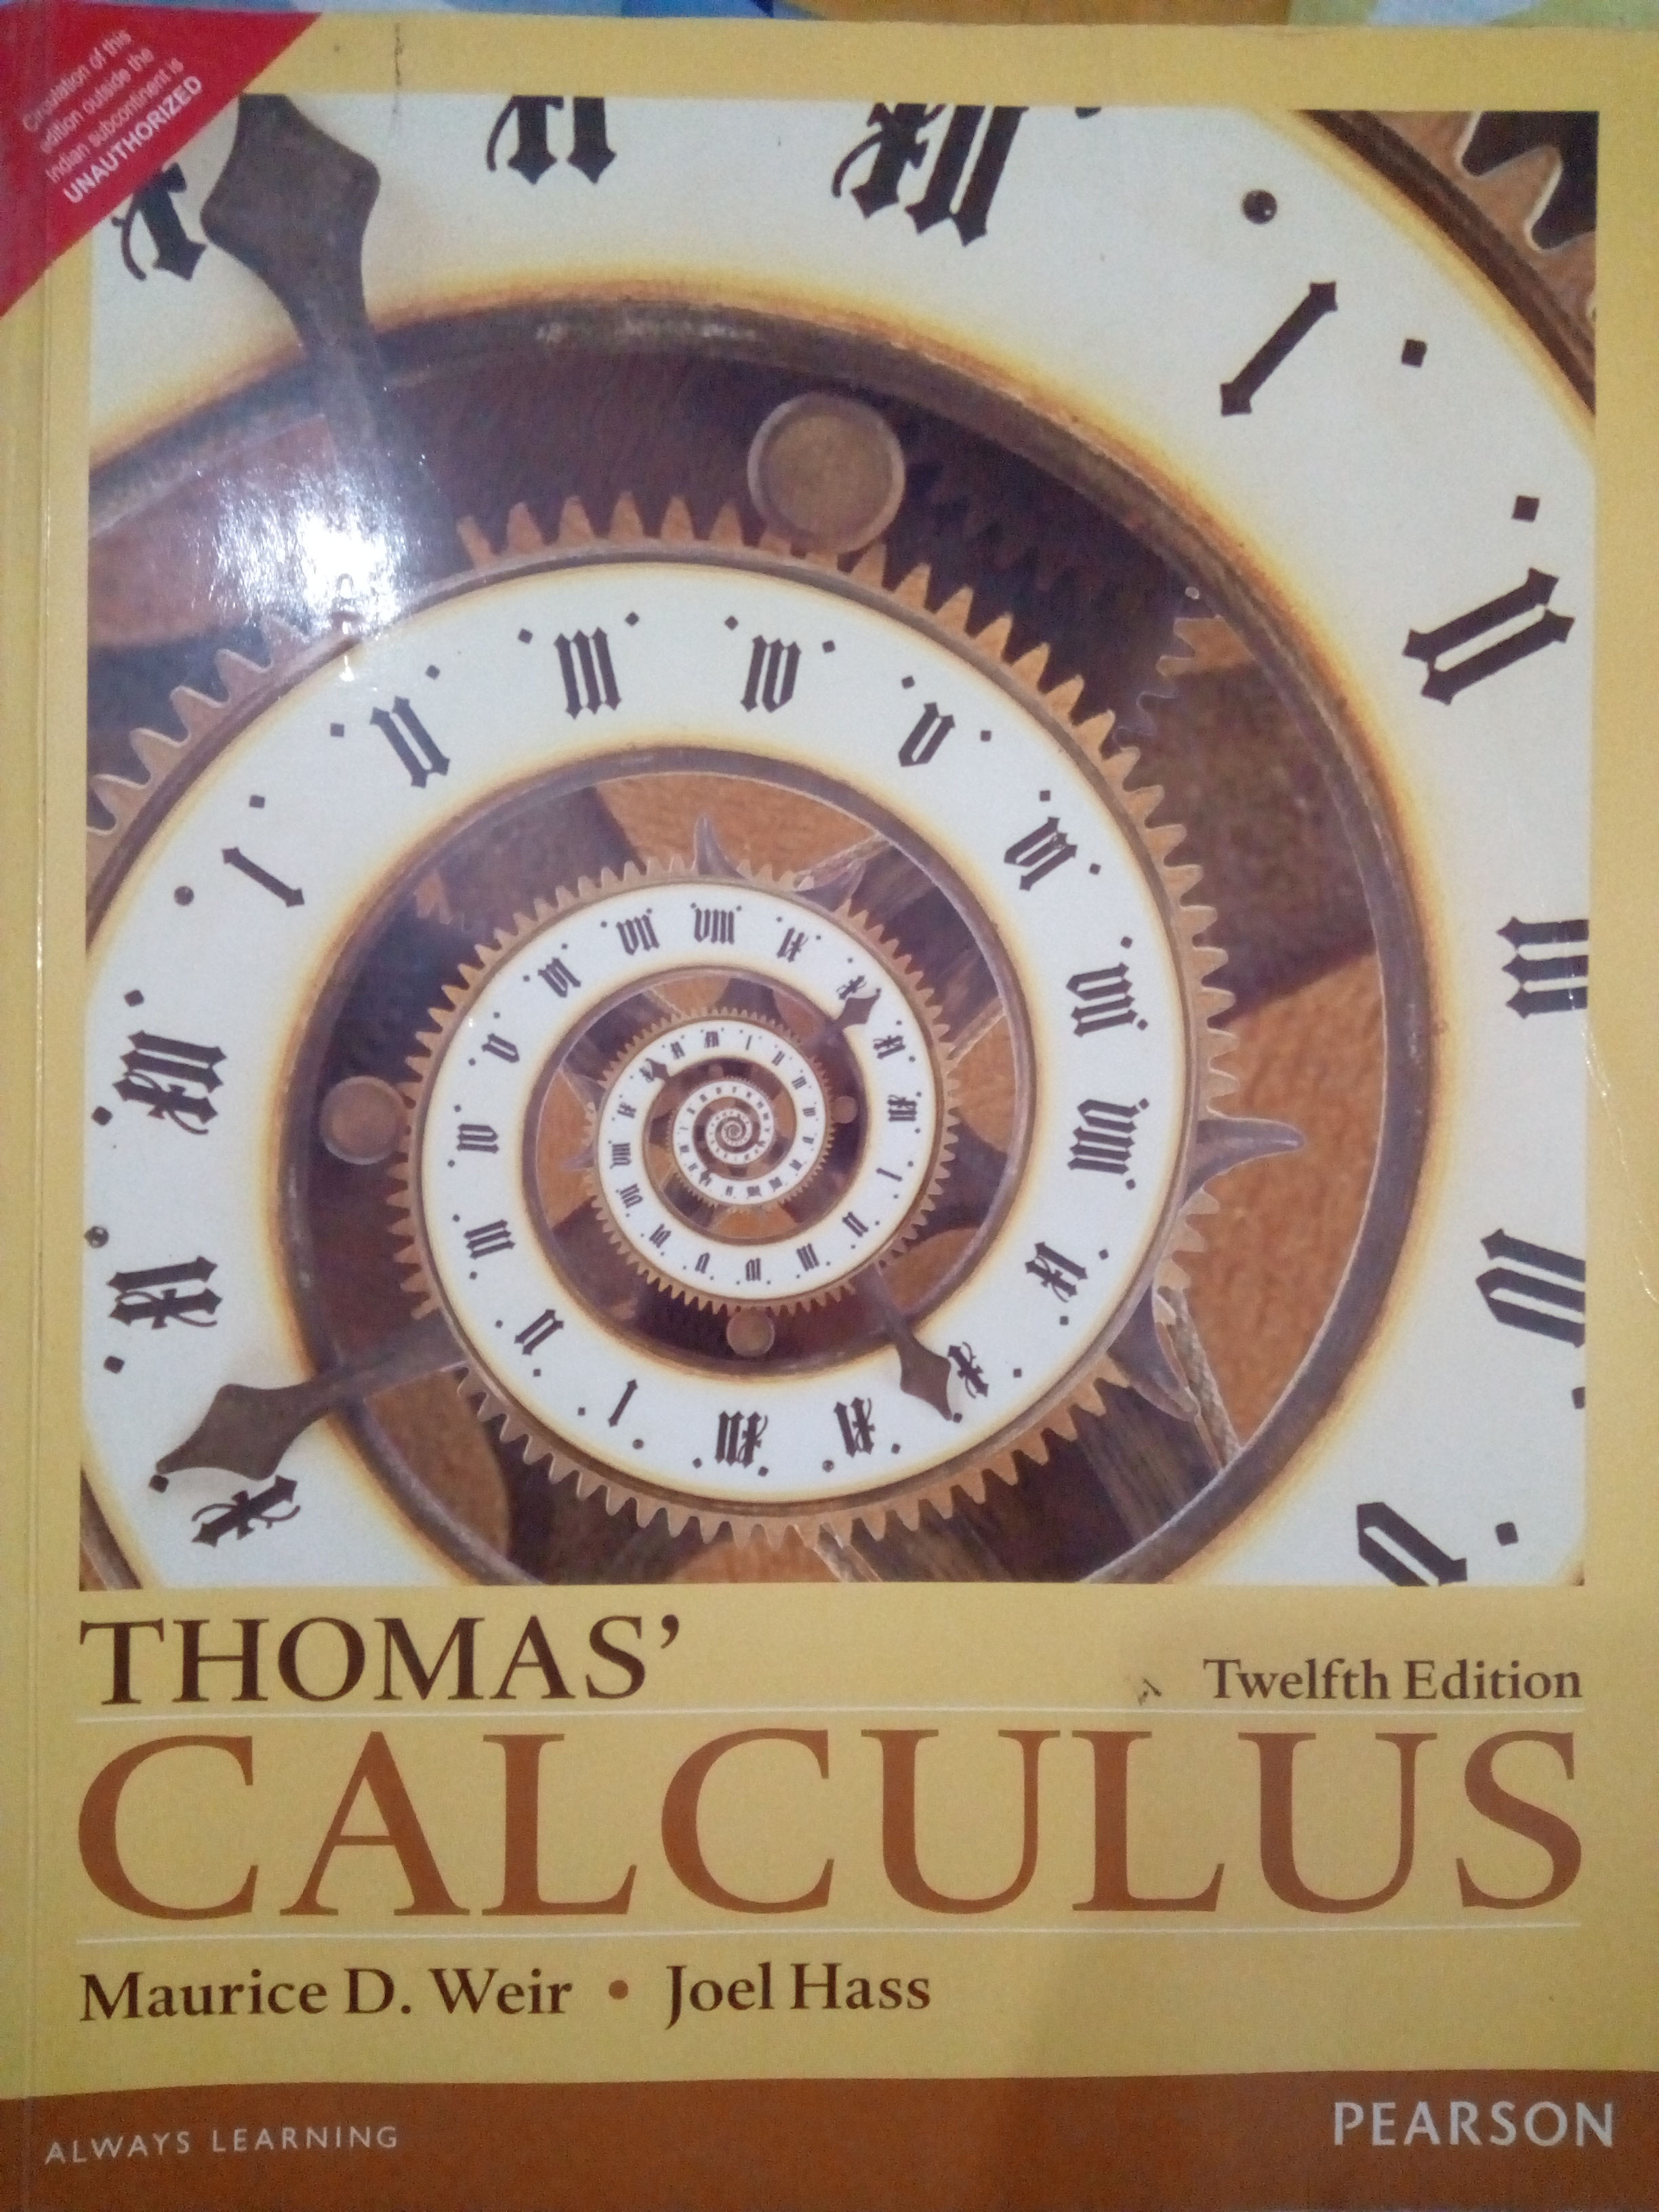 thomas' calculus 12th edition by pearson